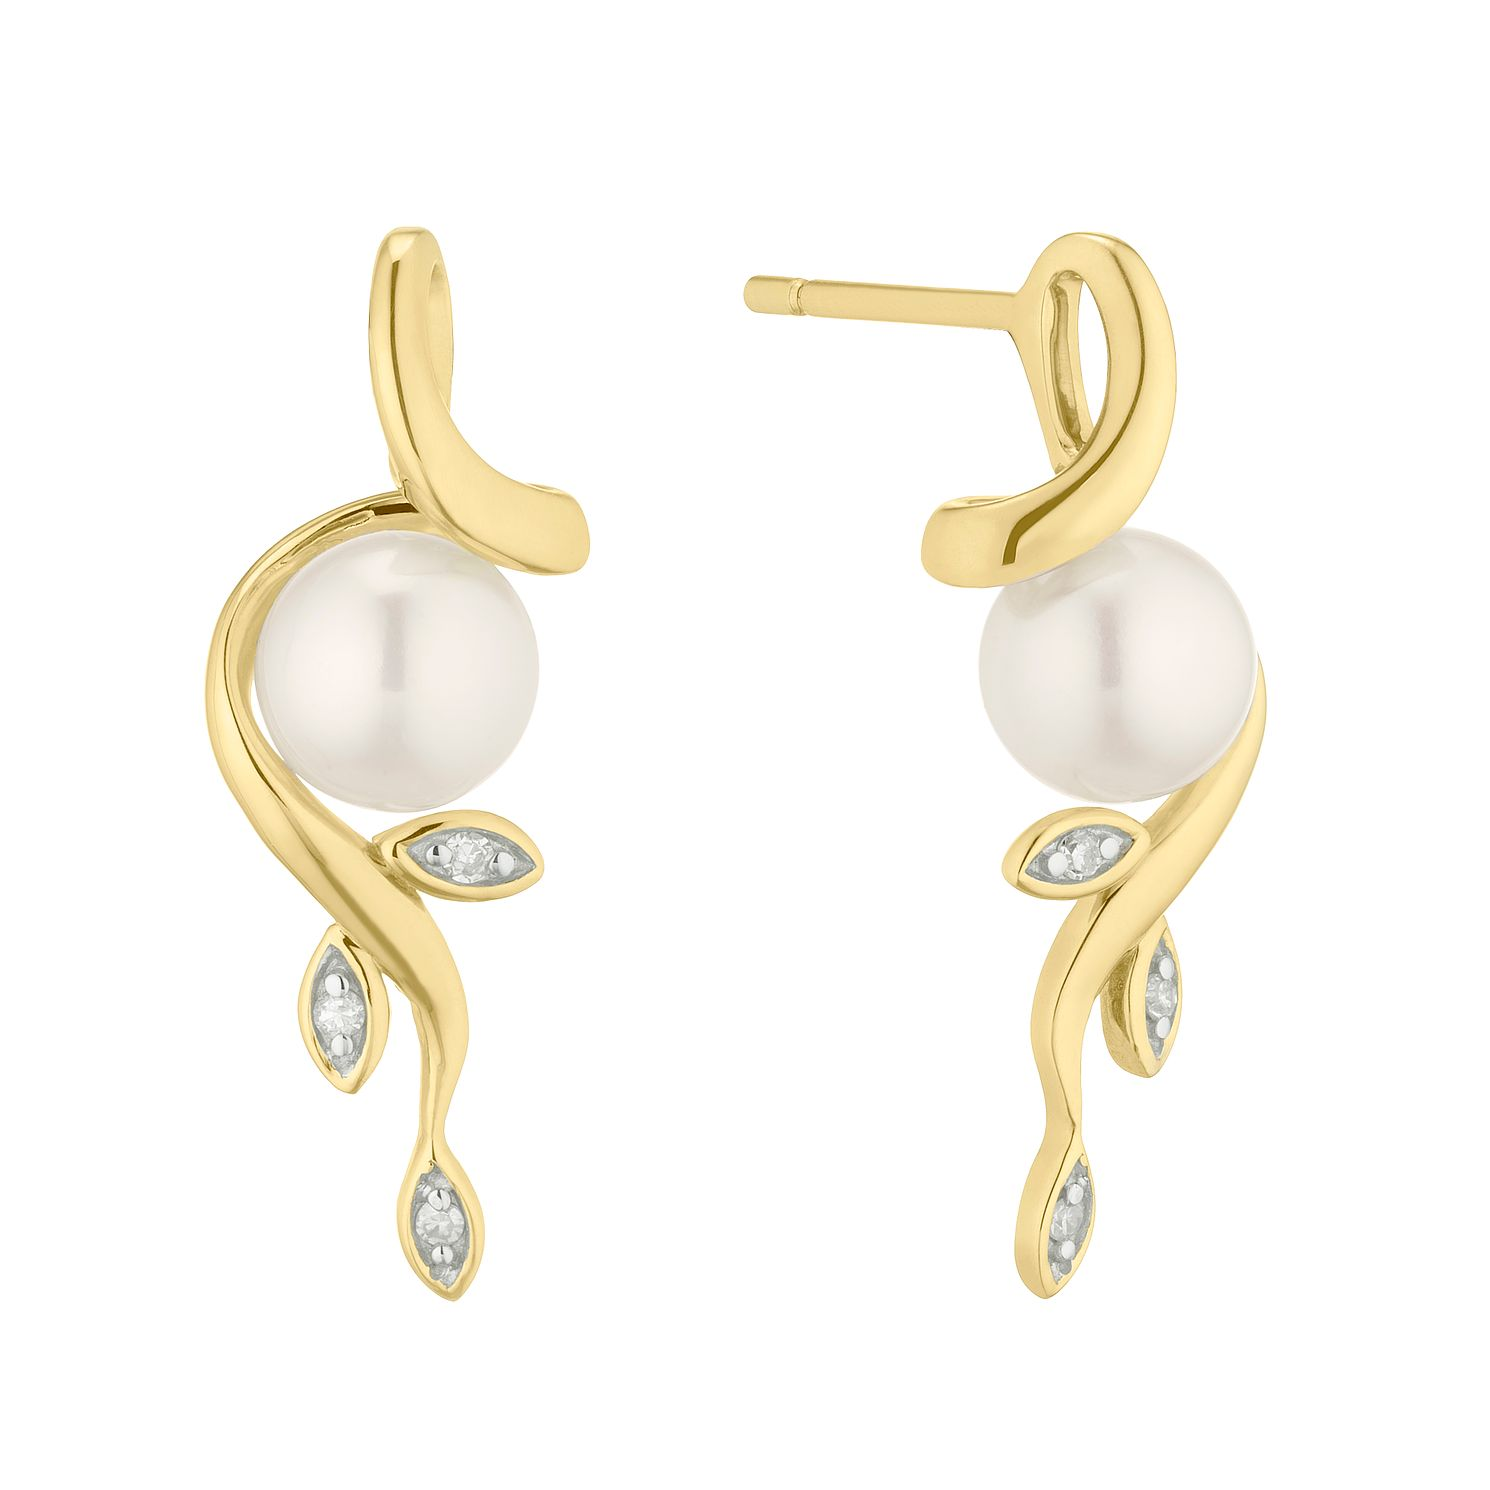 9ct Yellow Gold Cultured Freshwater Pearl & Diamond Earrings - Product number 4626583